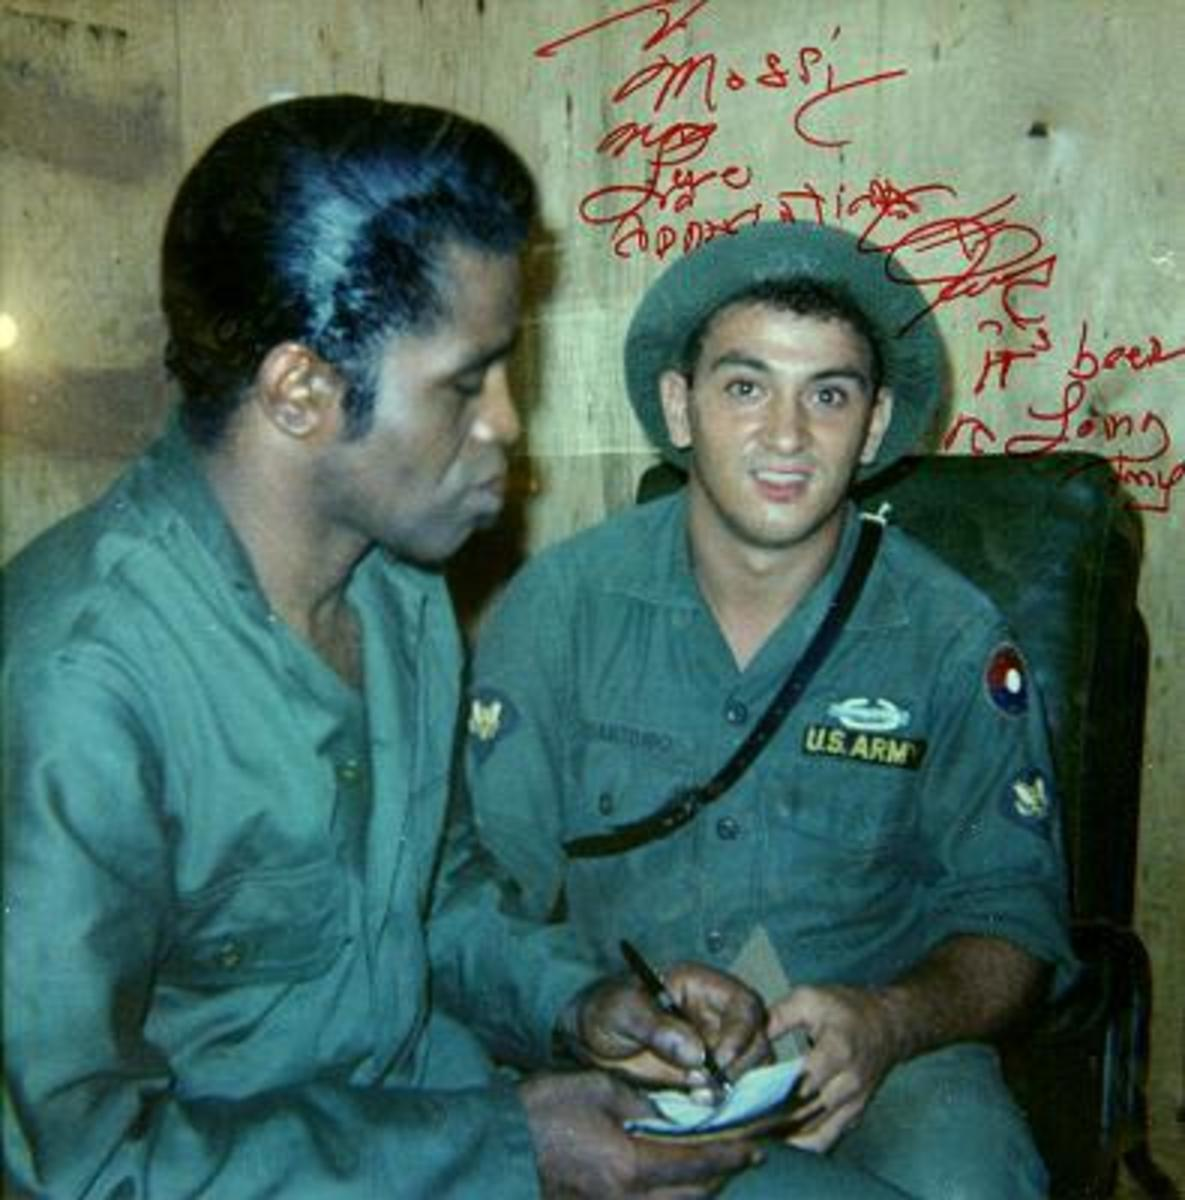 Brown with soldier in 'Nam